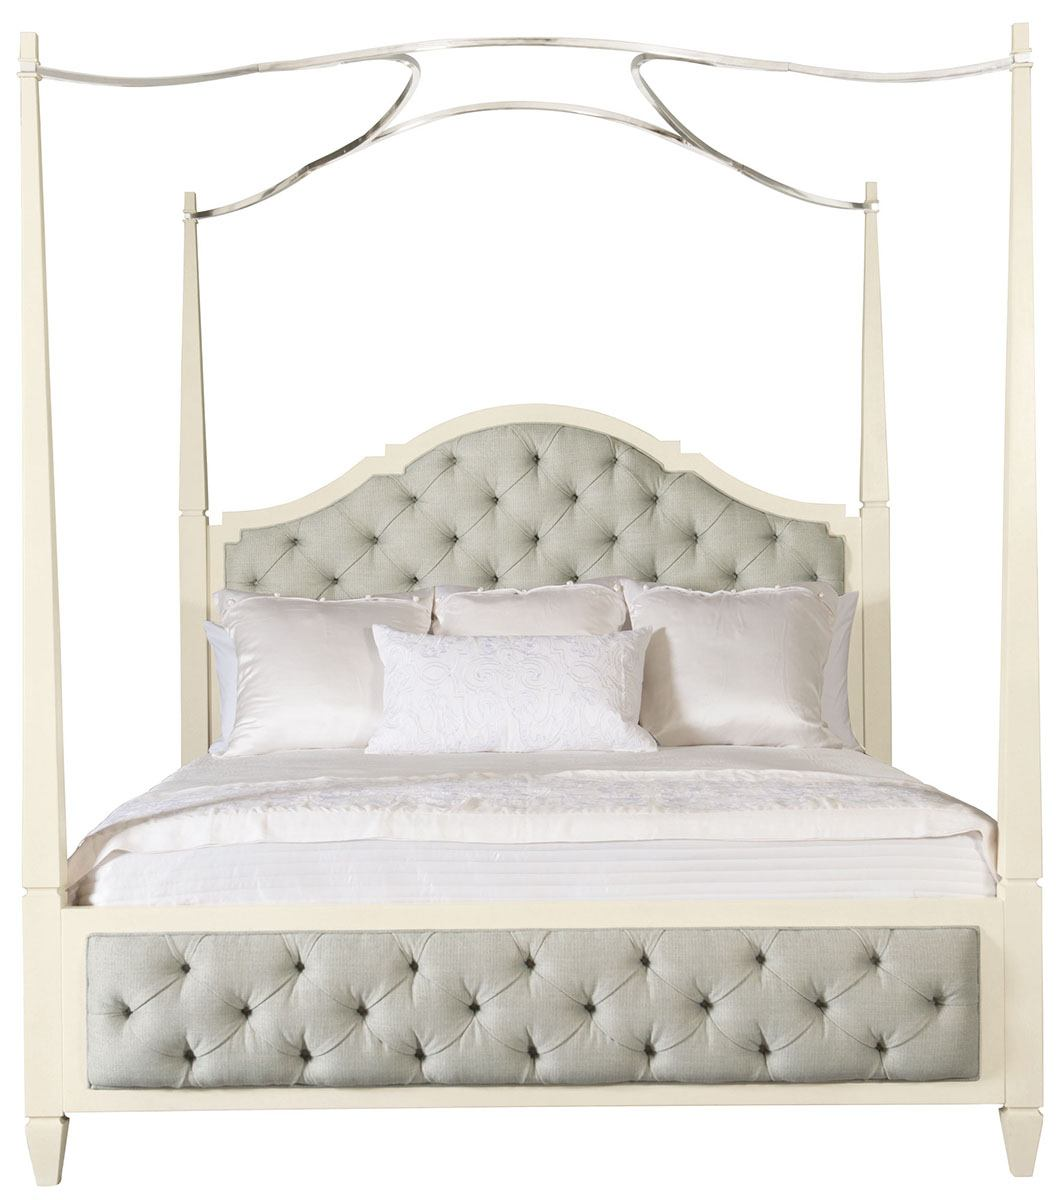 Bernhardt Savoy Place King Upholstered Poster Bed with Canopy in Ivory